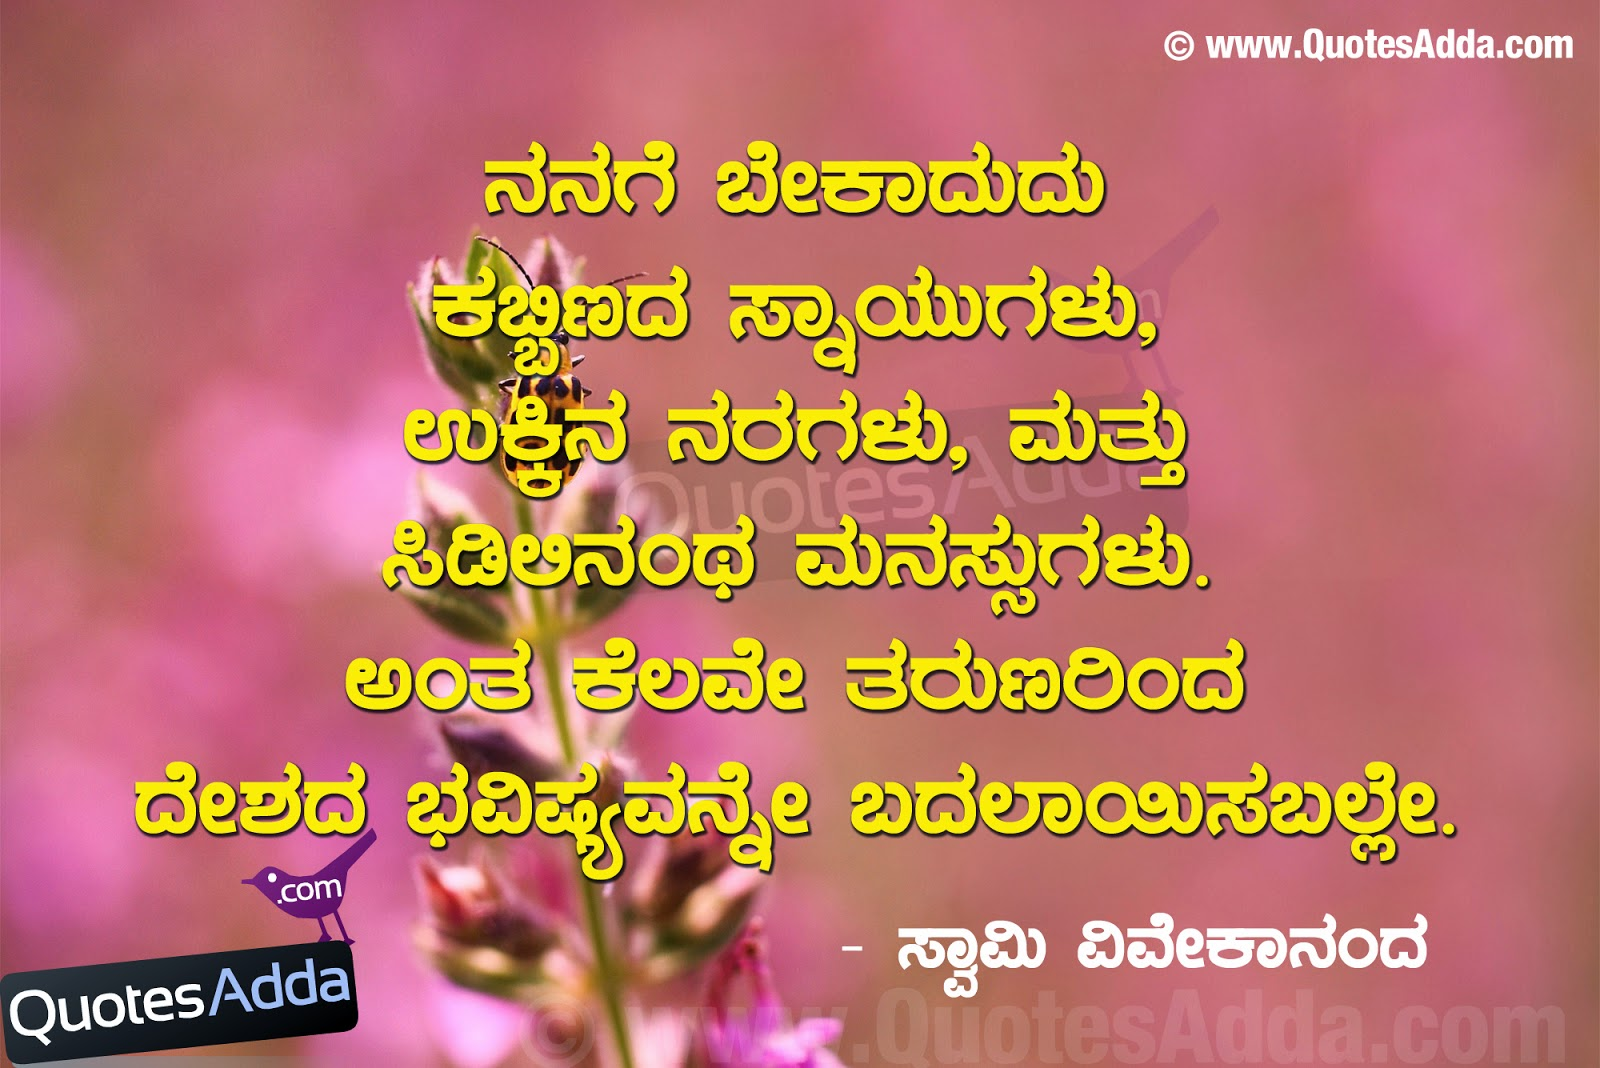 Love Quotes Wallpaper In Kannada : Kannada Language Swami Vivekanada Quotations QuotesAdda ...